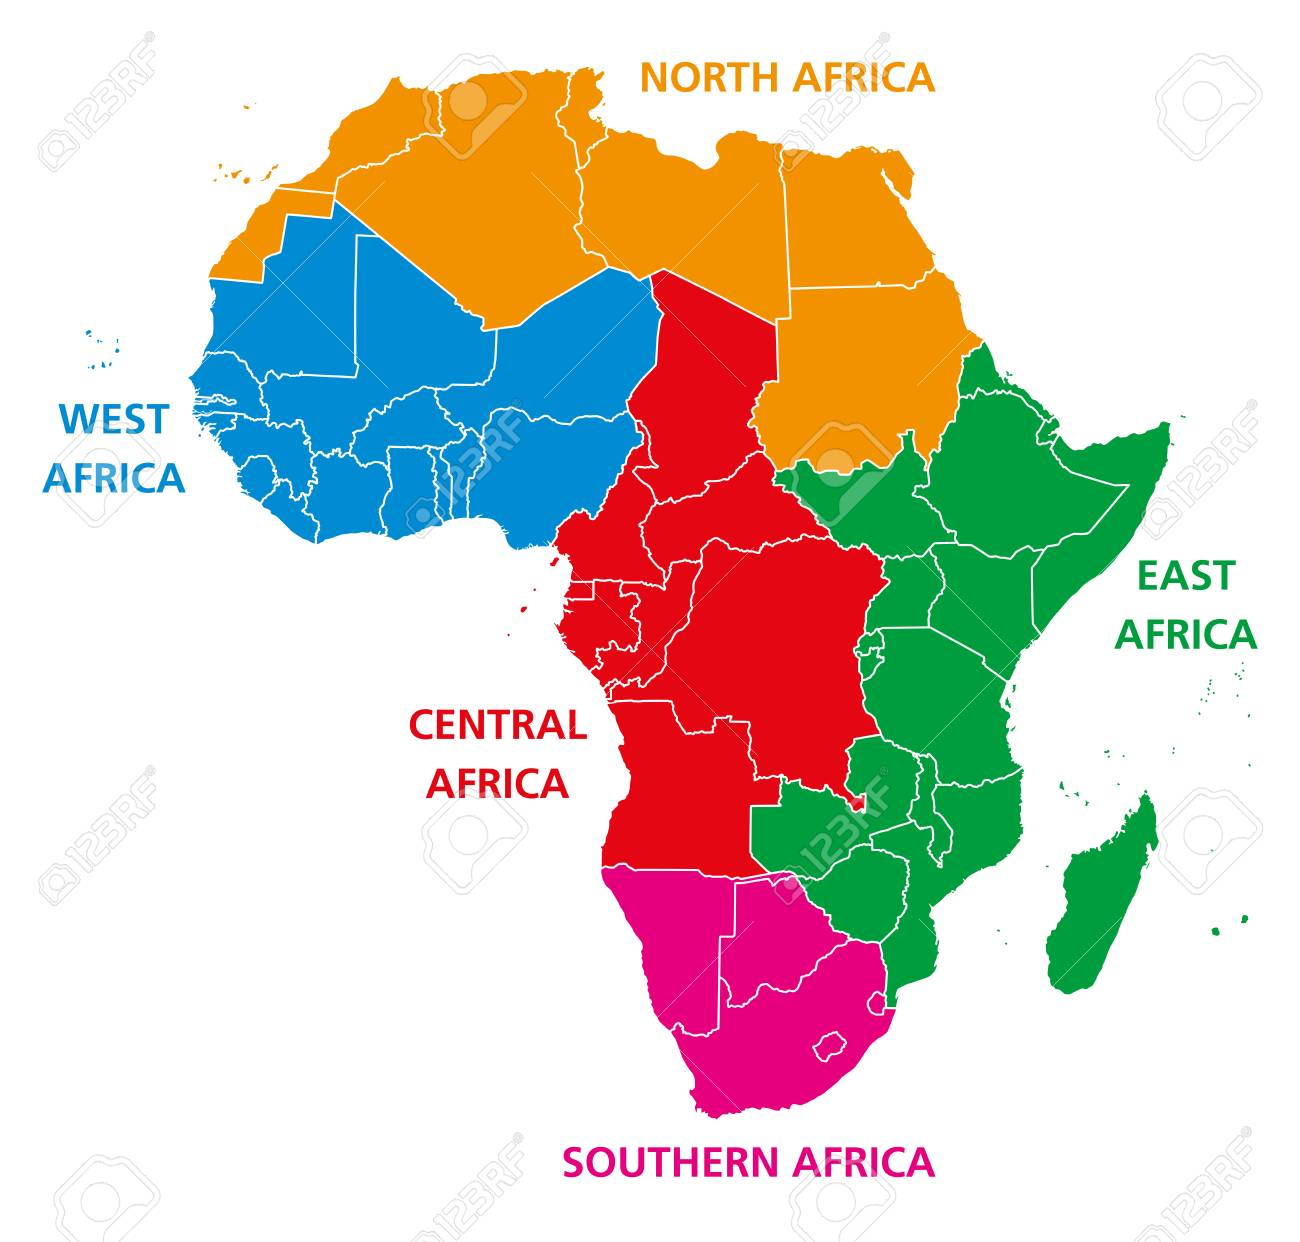 Map Of Africa Political.Regions Of Africa Political Map United Nations Geo Scheme With